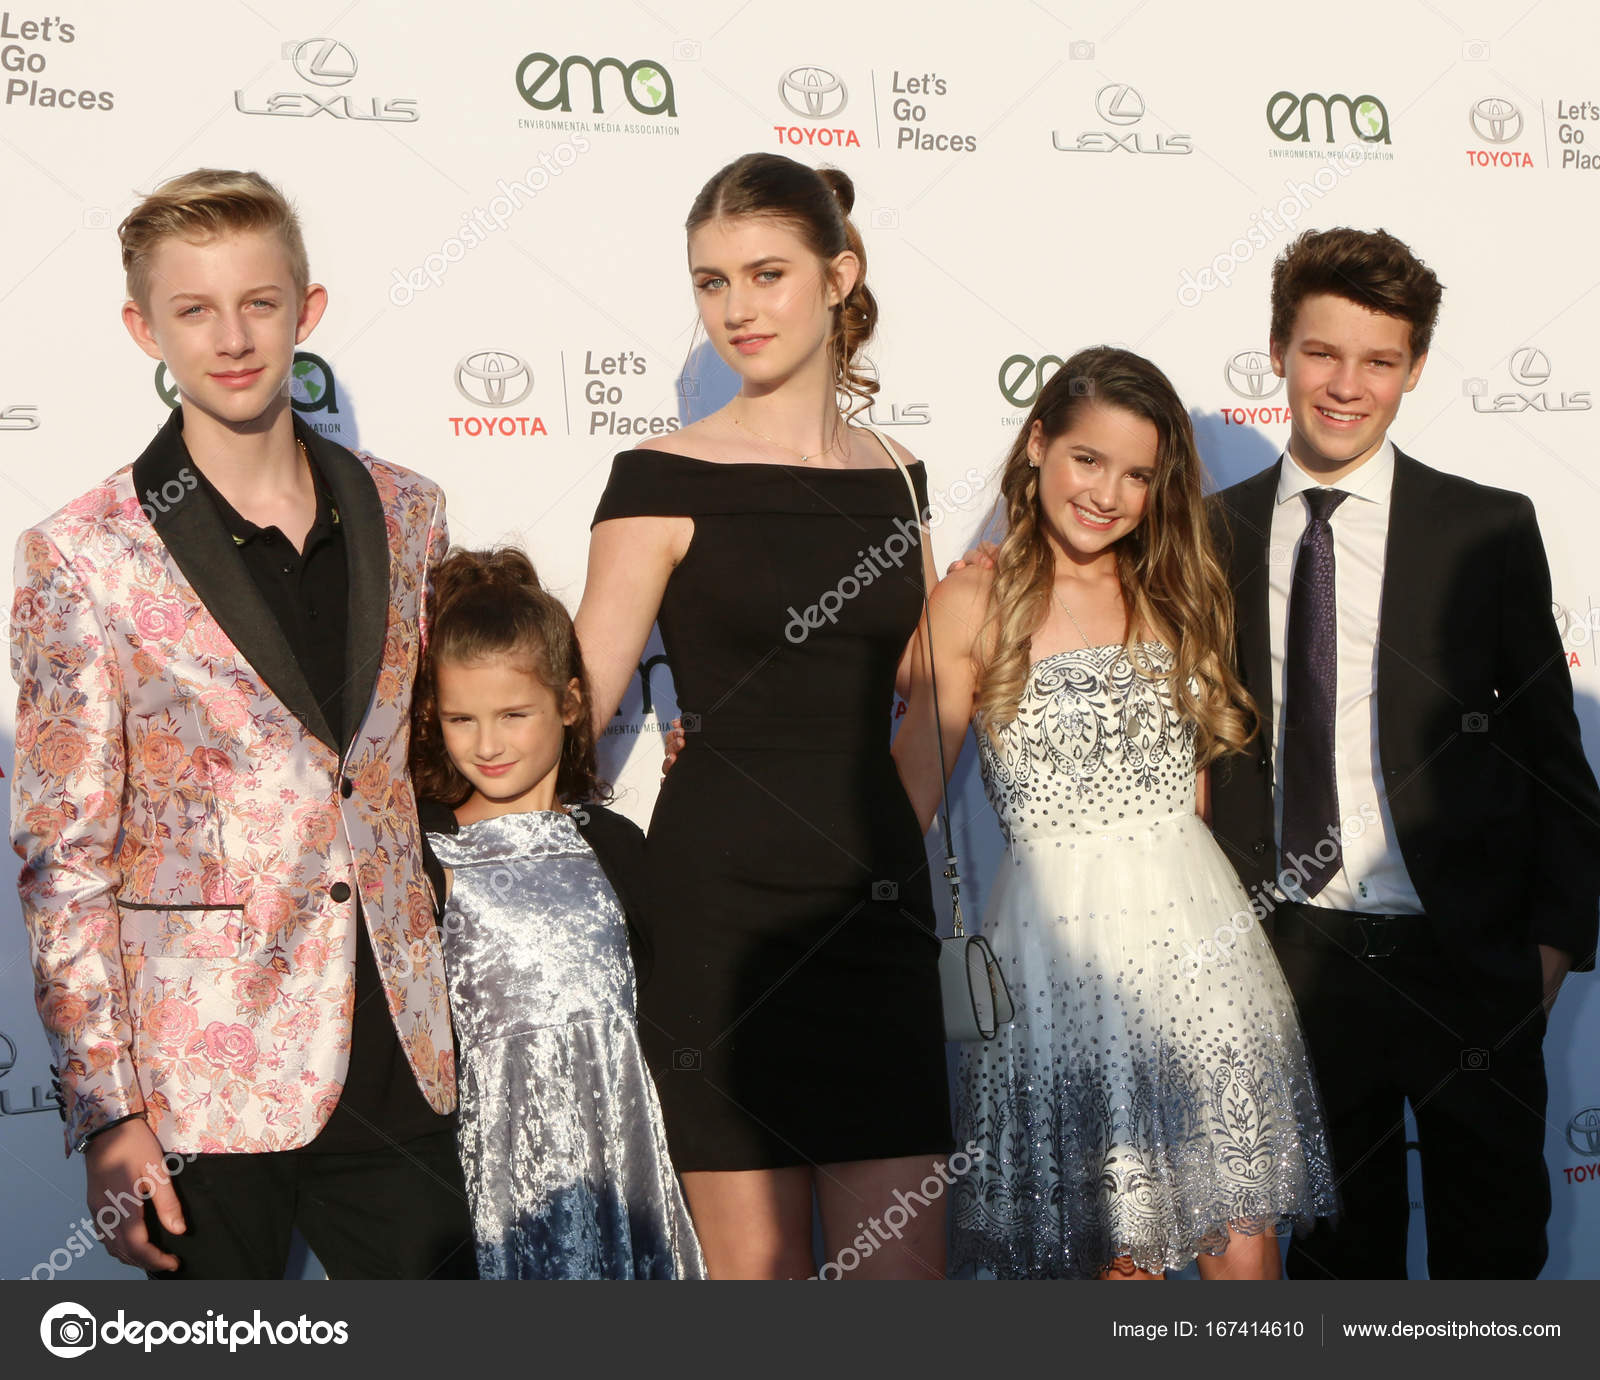 Annie leblanc and hayden summerall pictures 2019 dating in california